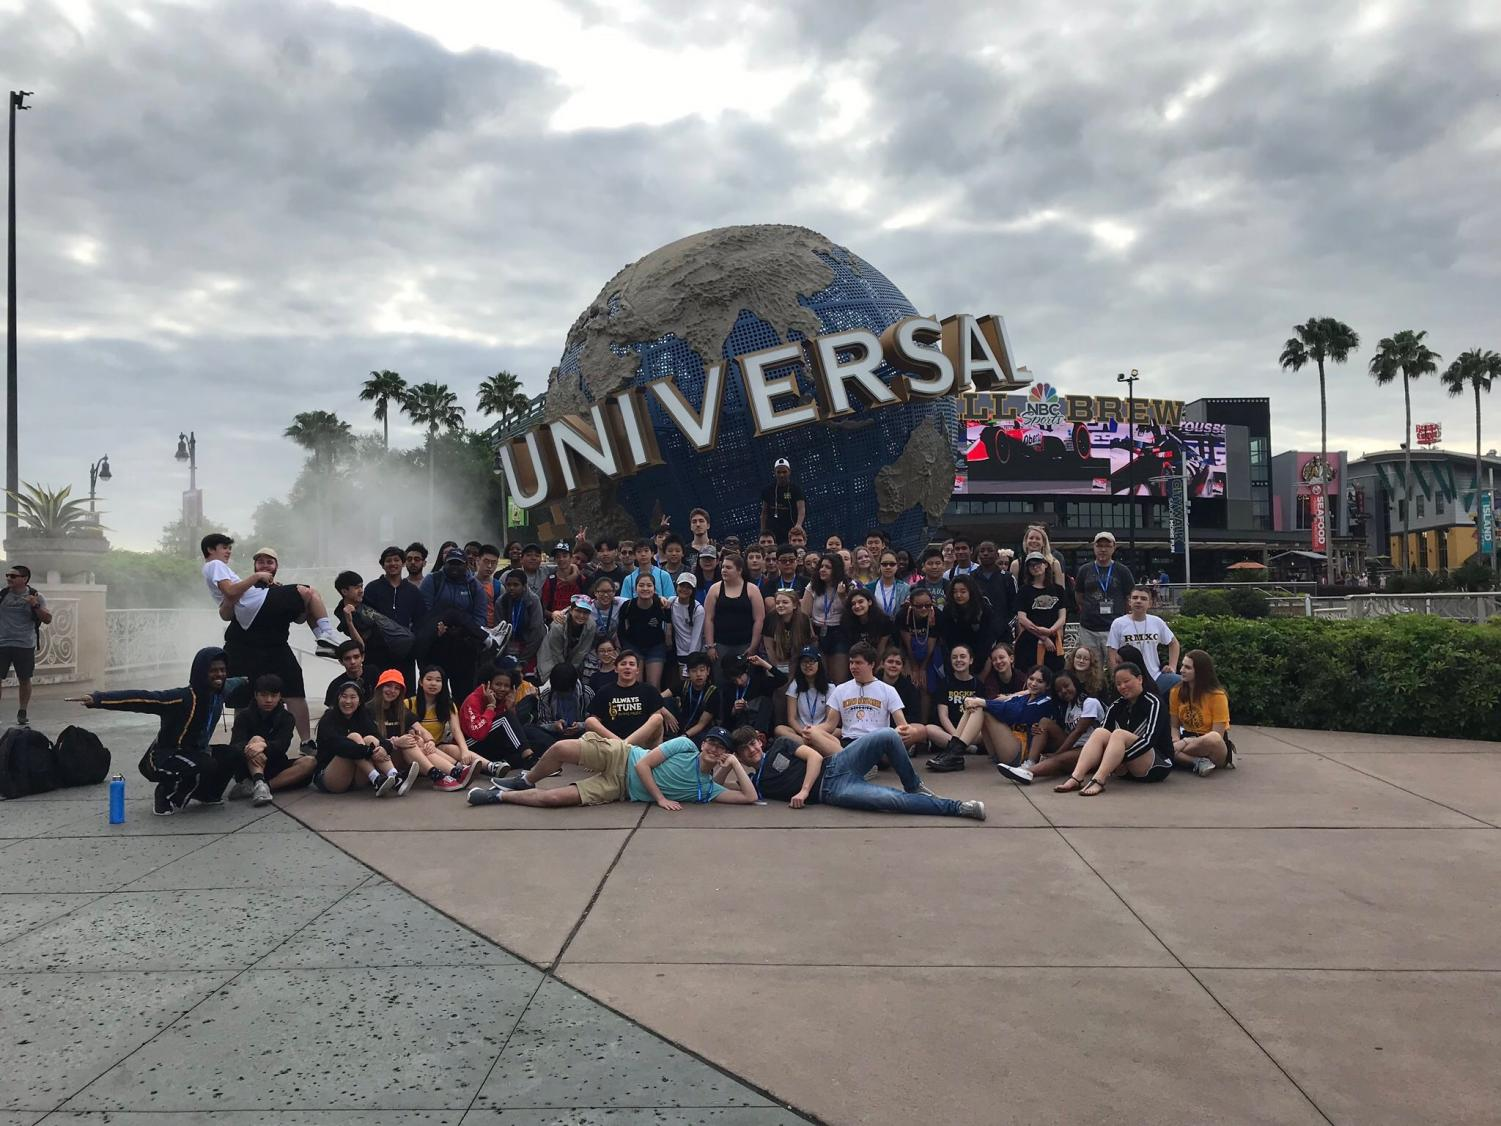 RM musicians pose in front of the globe at Universal Orlando. Photo courtesy of Peter Perry.